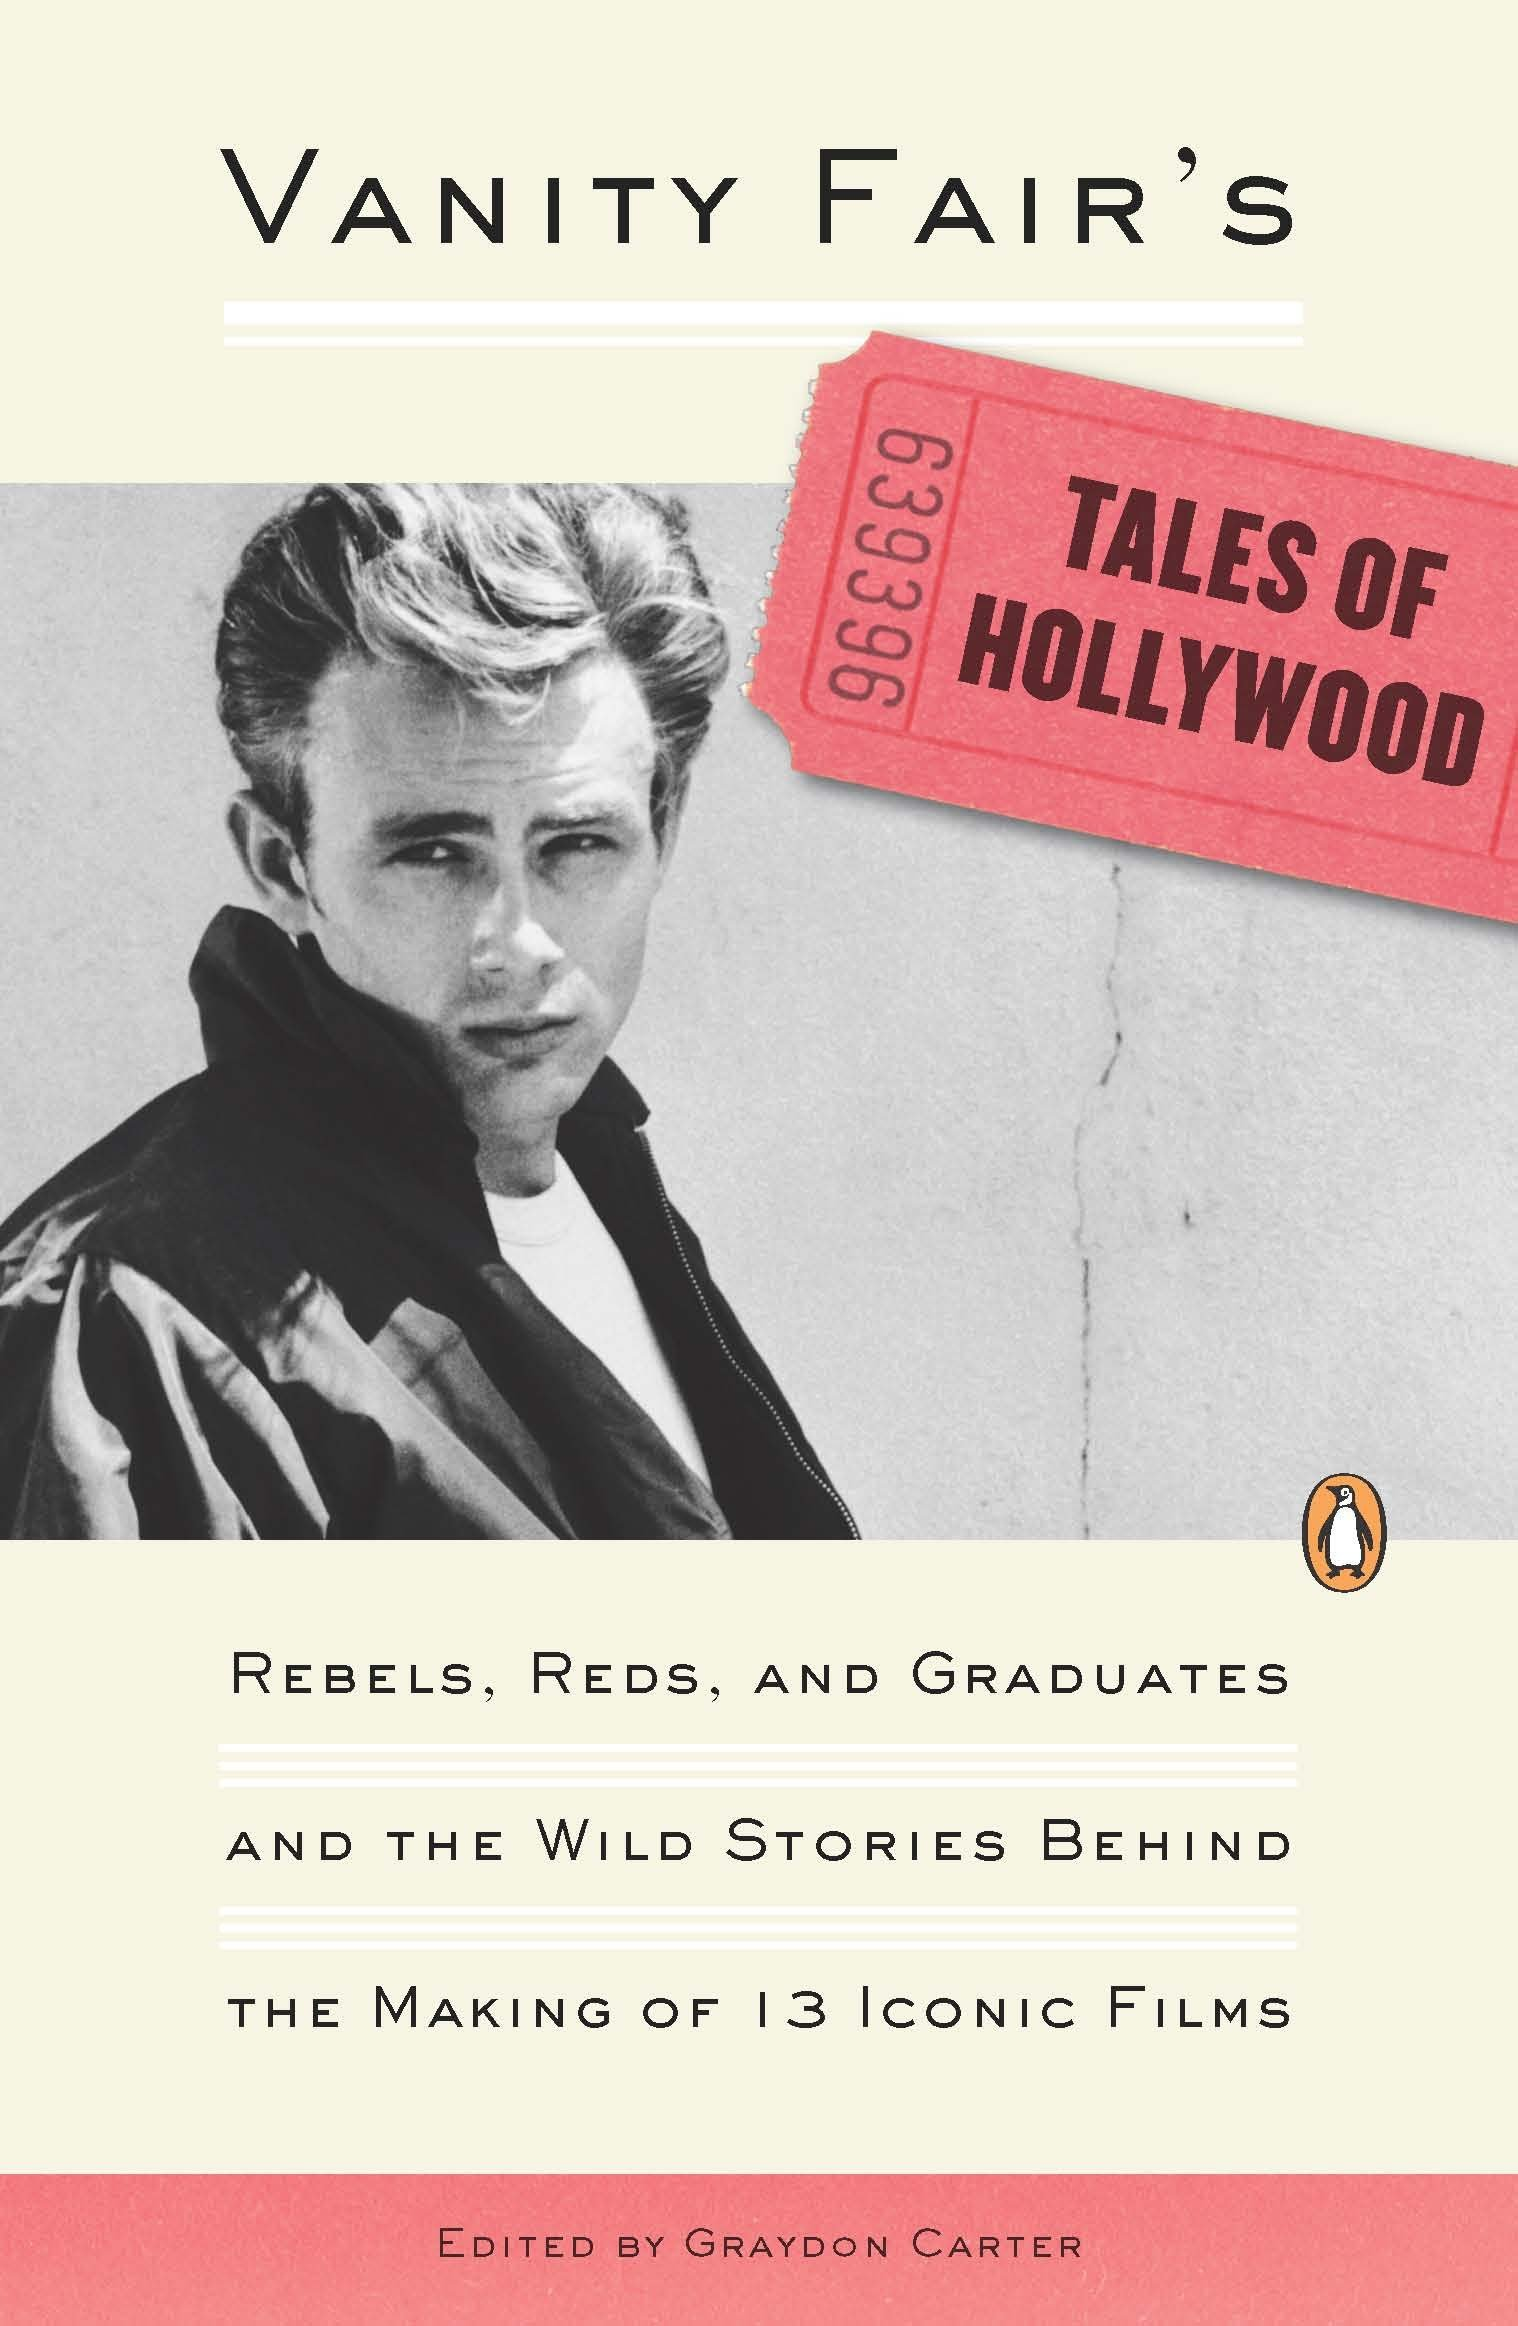 Read Online Vanity Fair's Tales of Hollywood: Rebels, Reds, and Graduates and the Wild Stories Behind the Making of 13 Iconic Films PDF